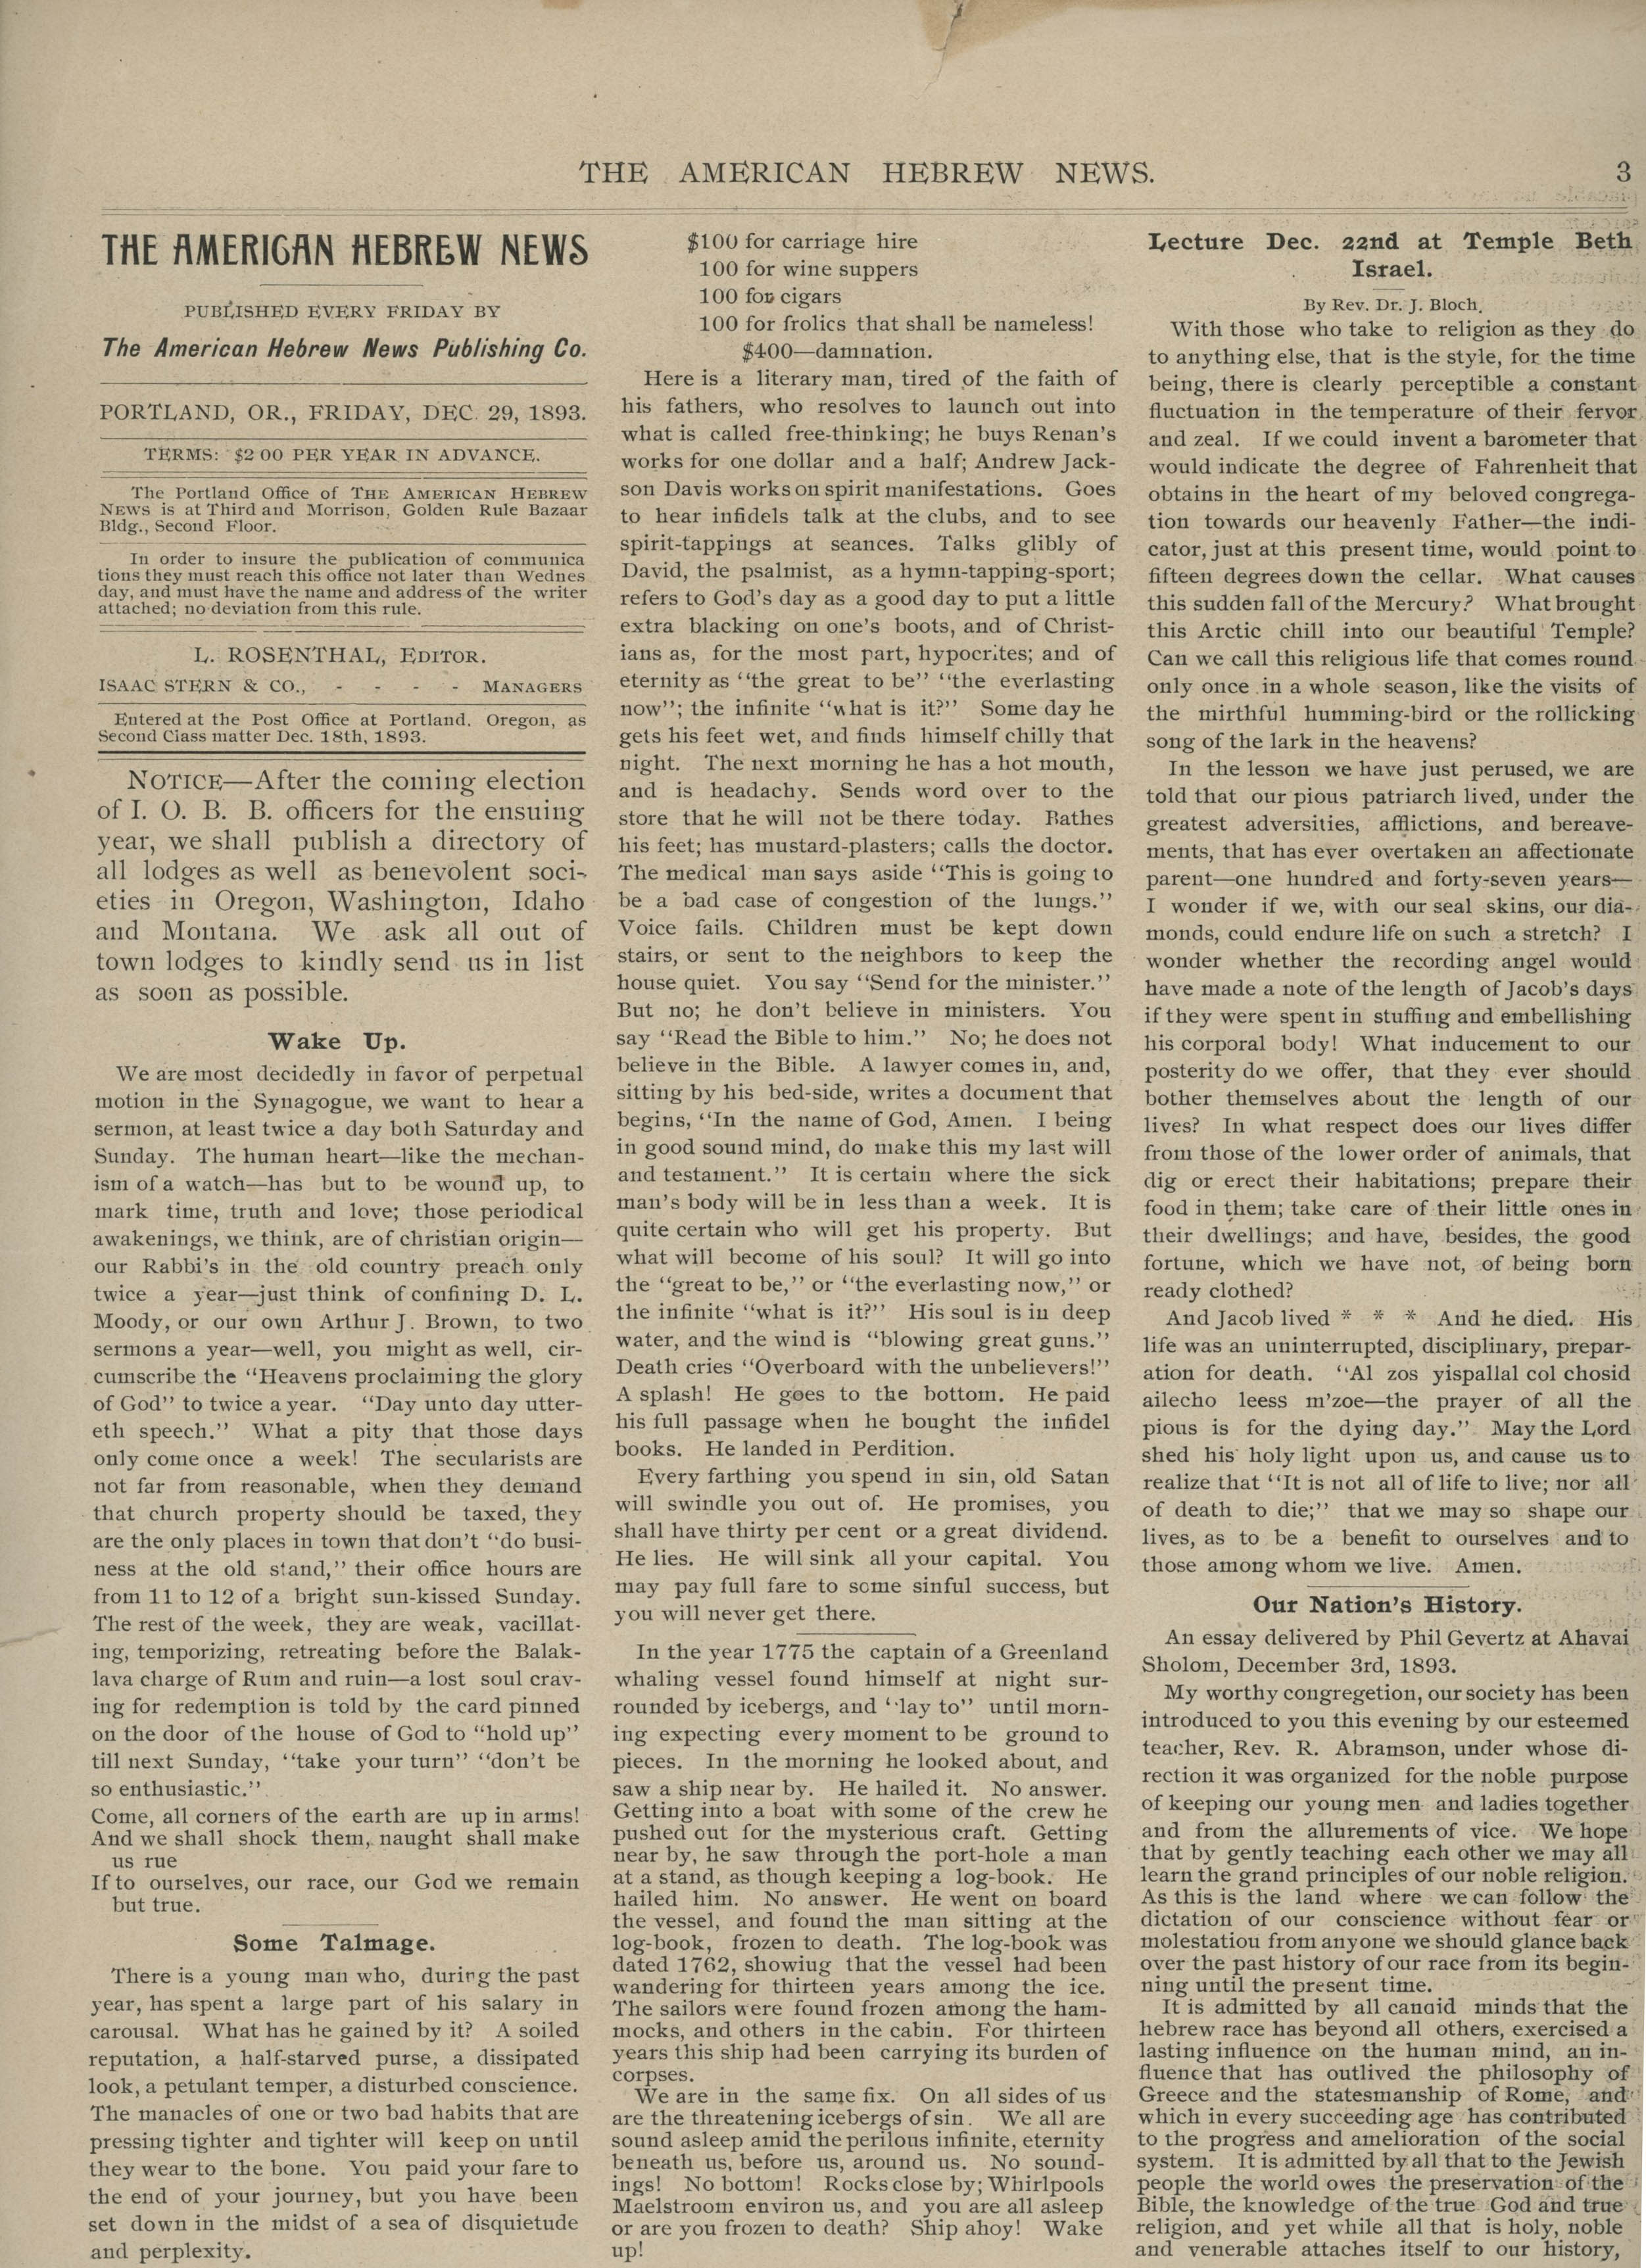 First page of American Hebrew News, Dec. 29, 1903